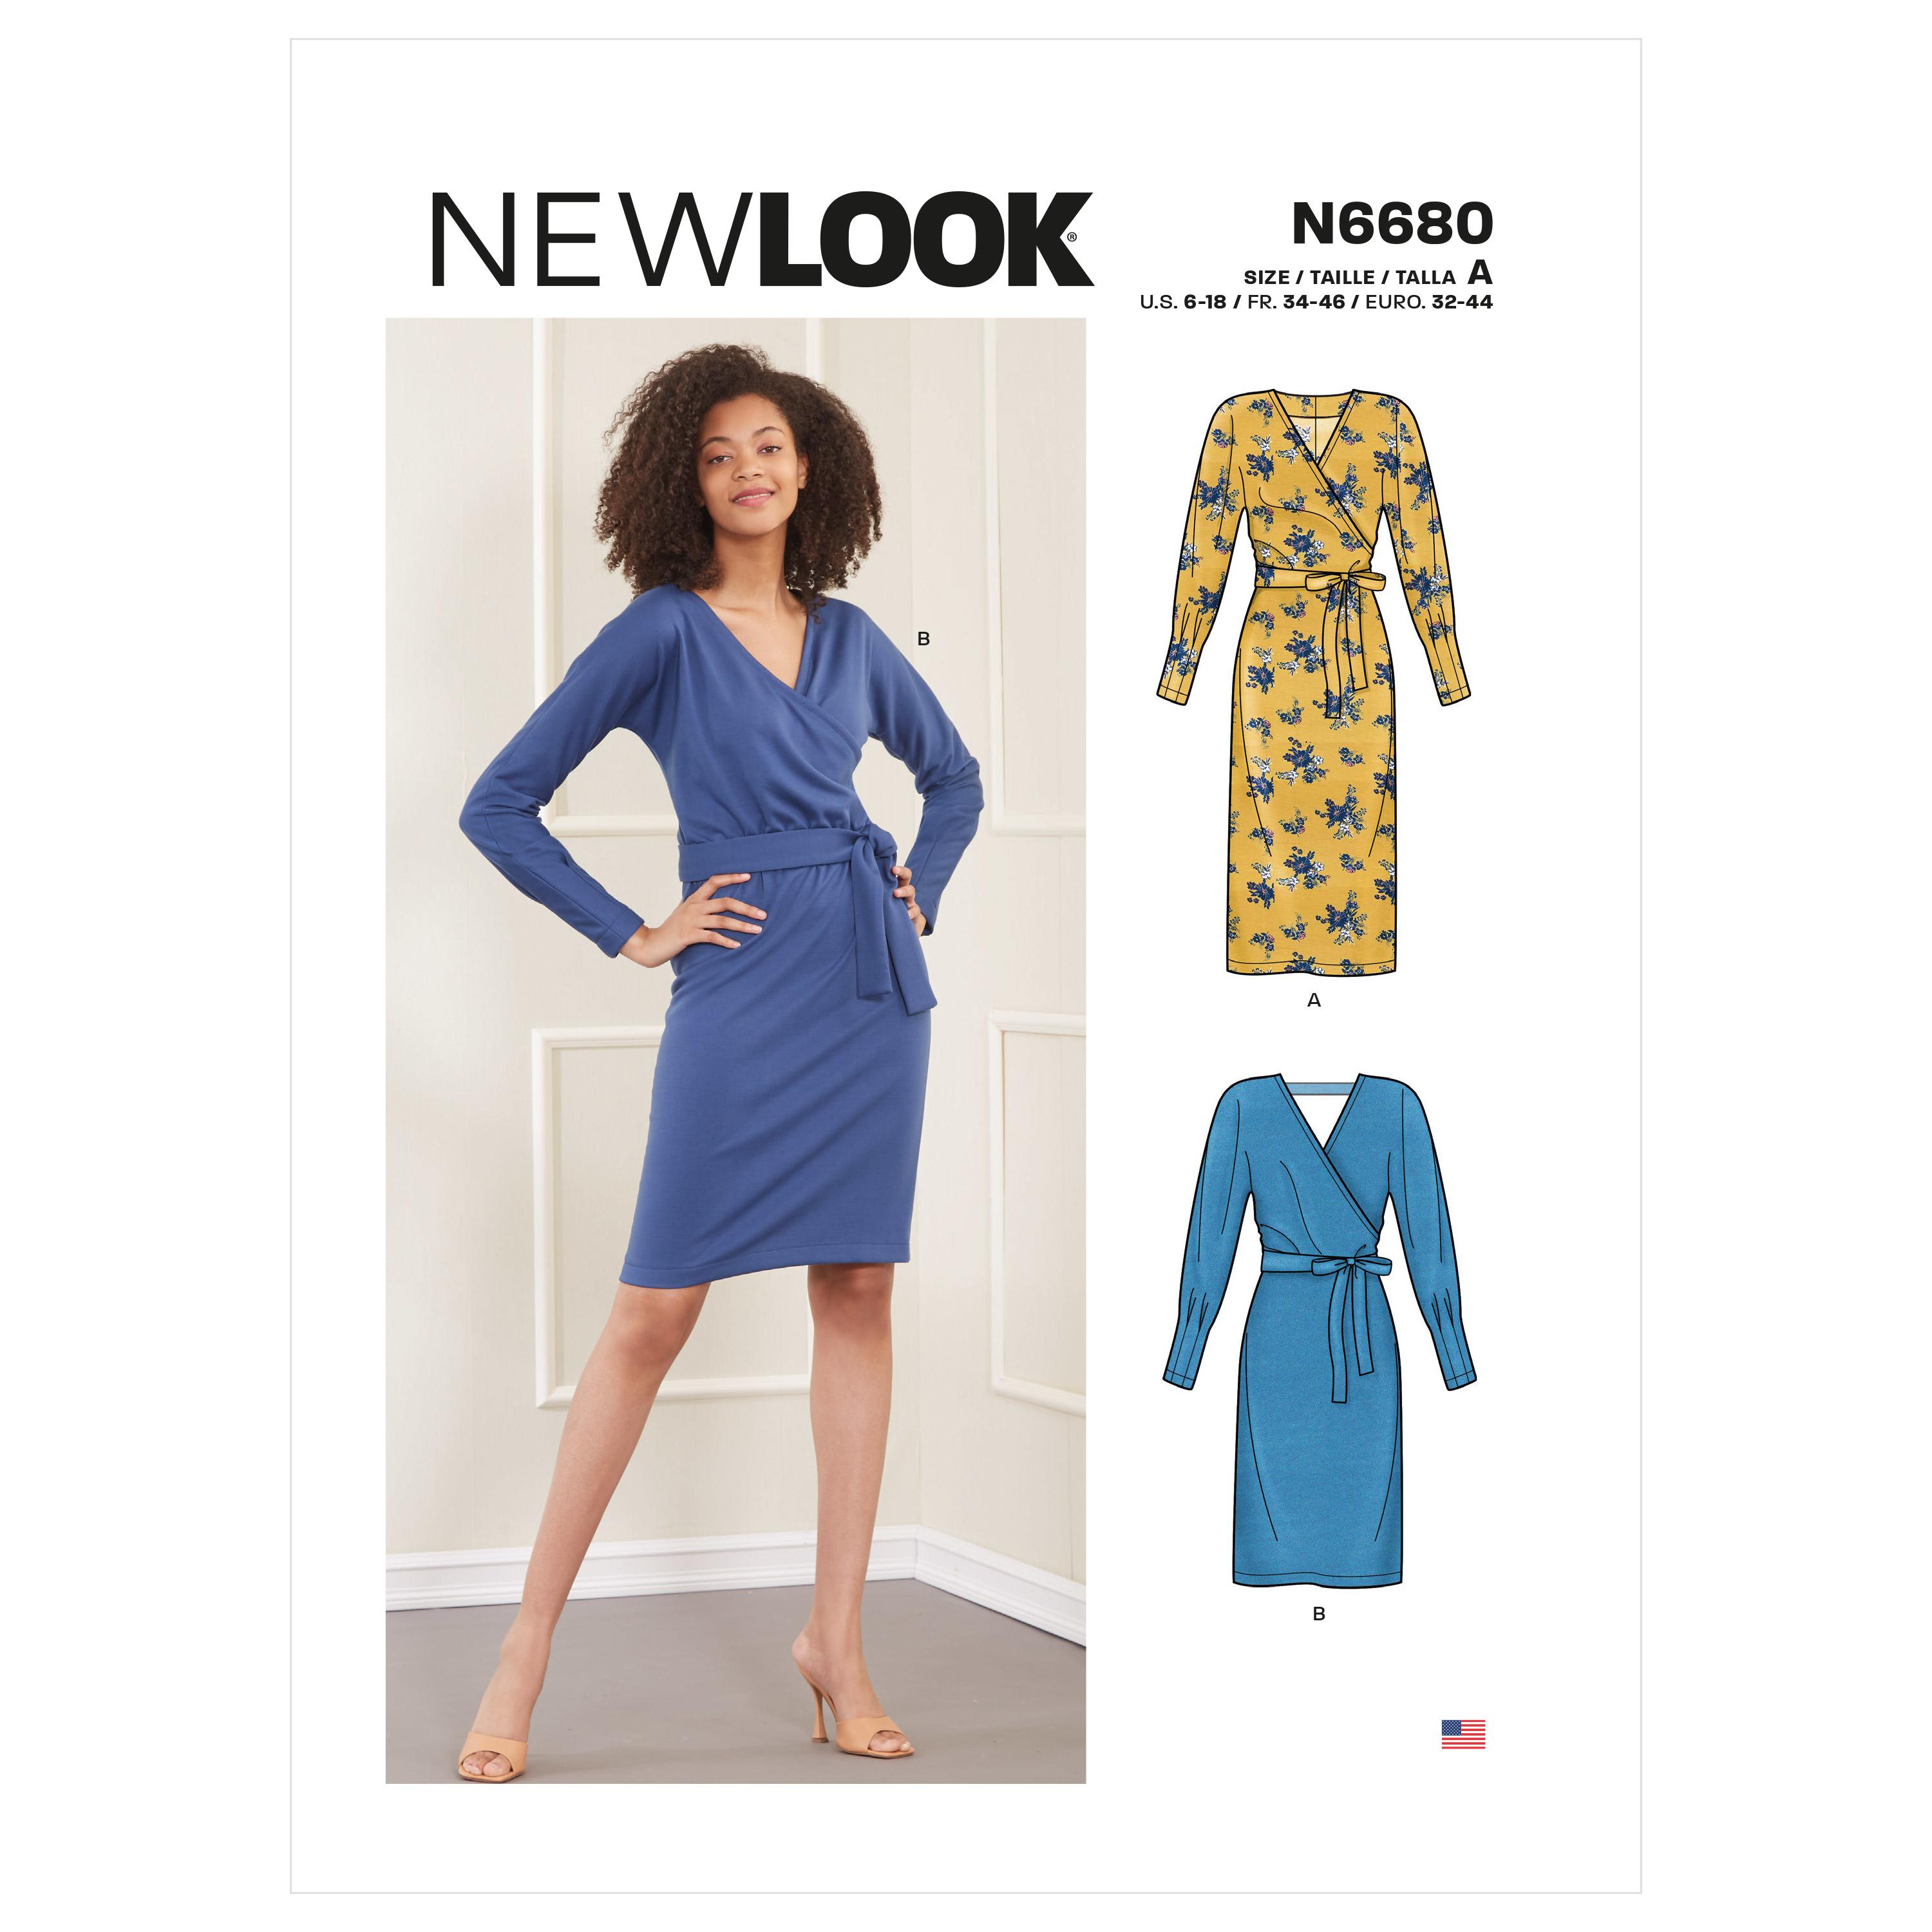 New Look Sewing Pattern N6680 Misses' Knit Dress